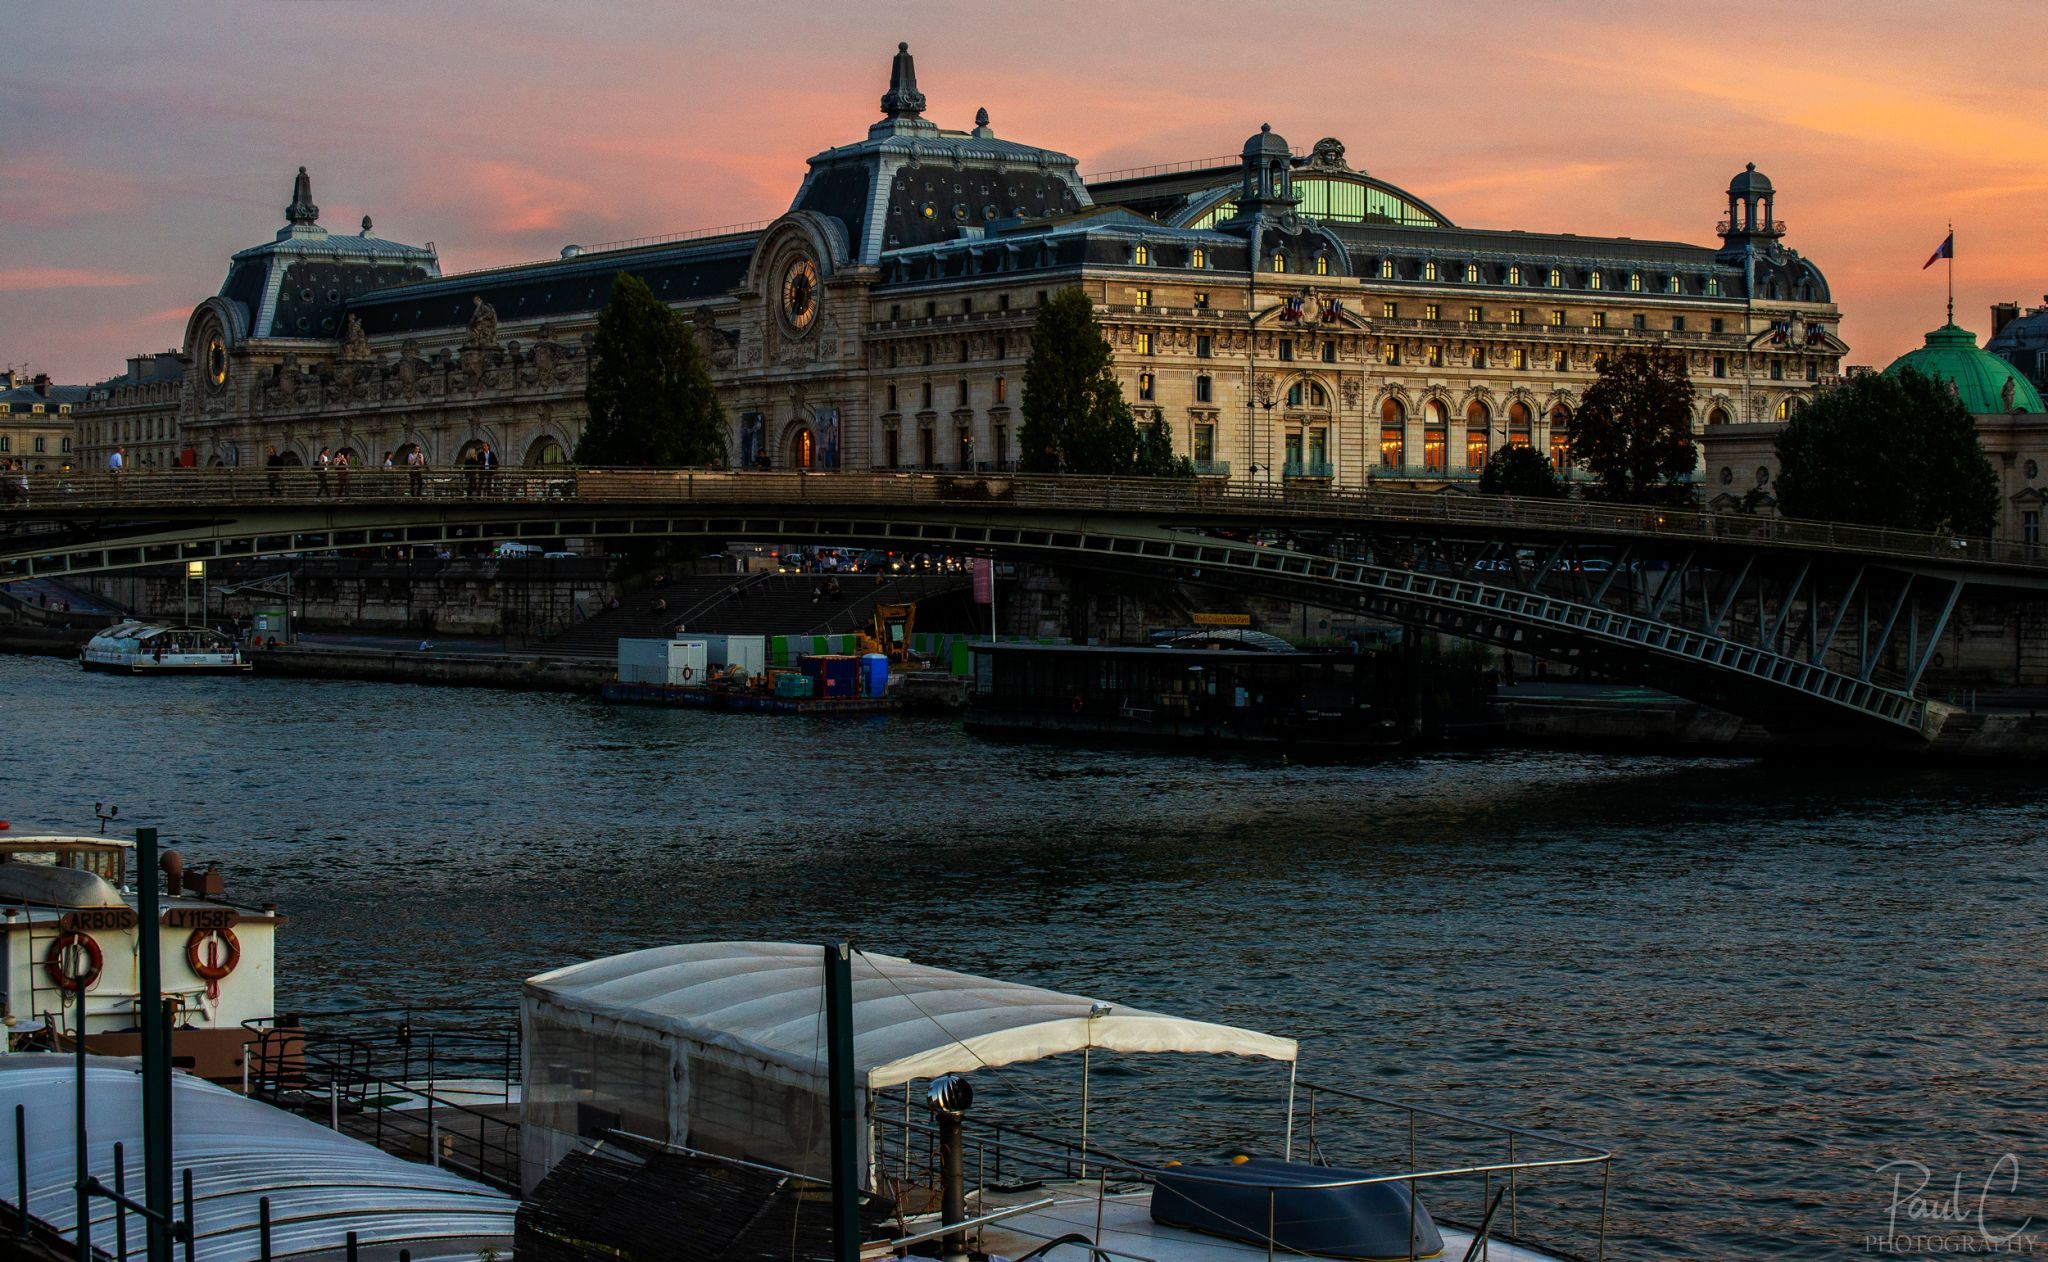 Musee d'Orsay view from the other side of the Seine, France